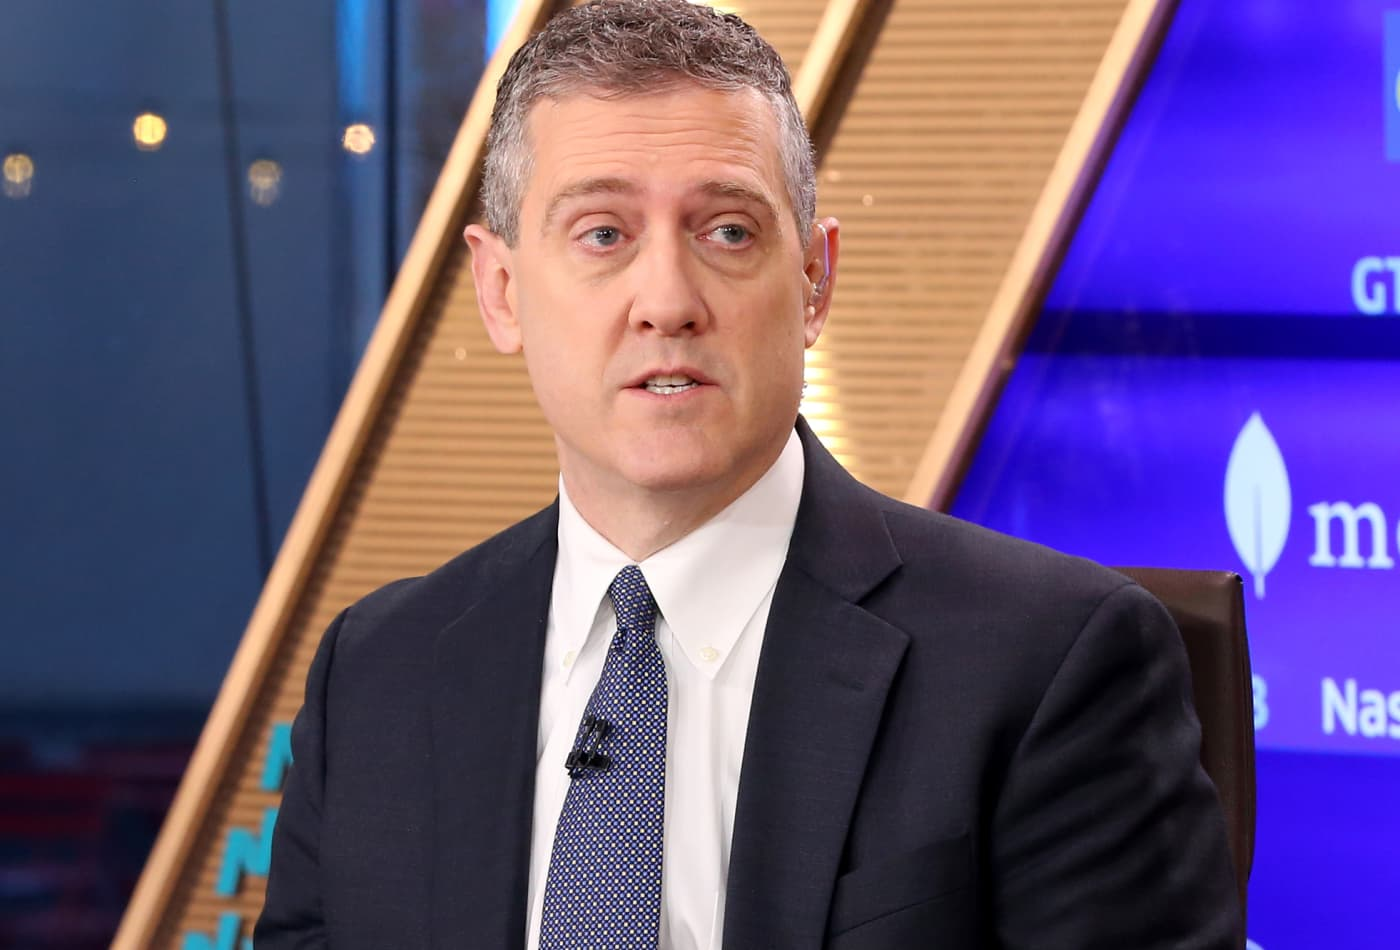 Fed's Bullard says US economy not in 'free fall' despite 32% unemployment projection